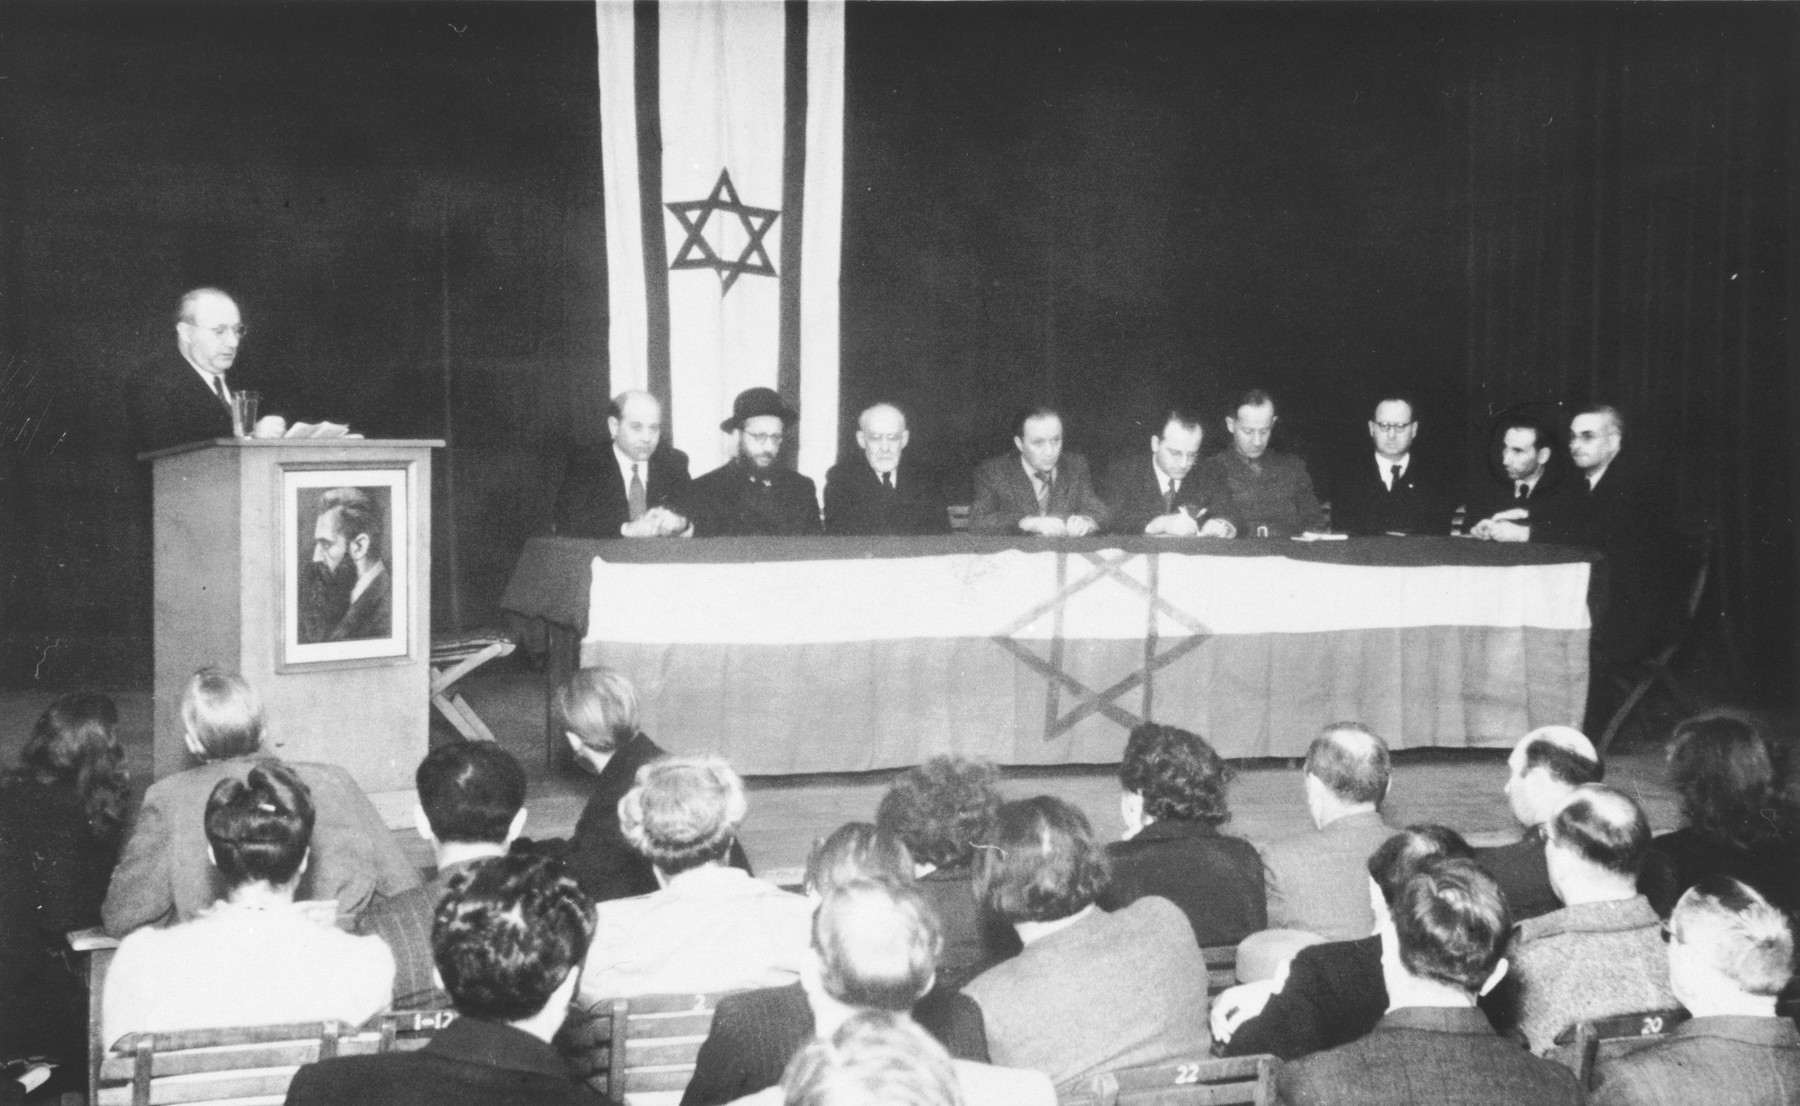 Zionist gathering of Jewish displaced persons in the British zone.  Those pictured include Mr. Yunis, Abraham Lipshitz, Norbert Wollheim, Roman Berger, Josef Rosensaft and [probably] Dr. Leo Baeck.